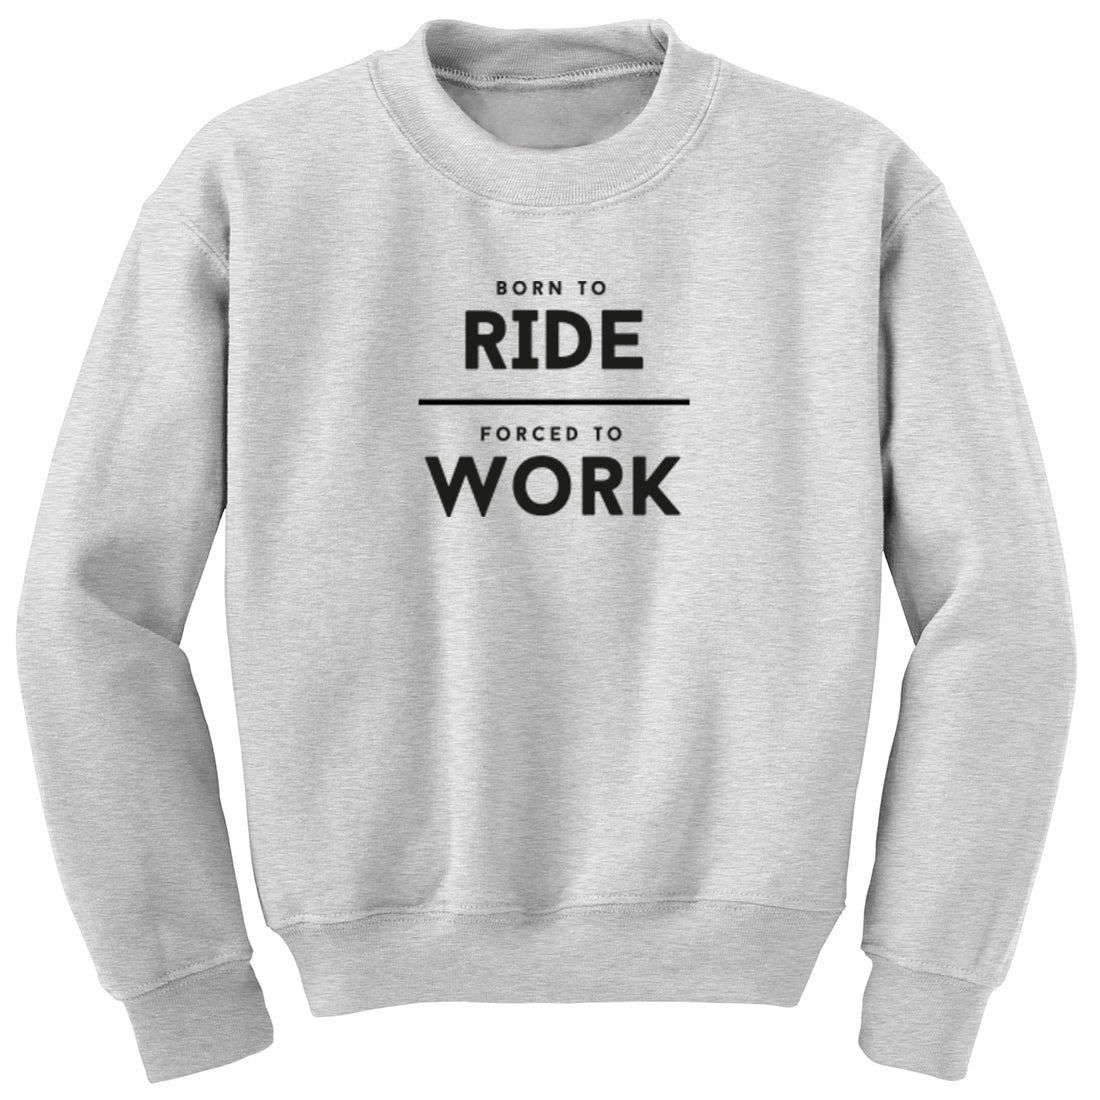 Born To Ride Forced To Work Unisex Jumper K2000 - Illustrated Identity Ltd.